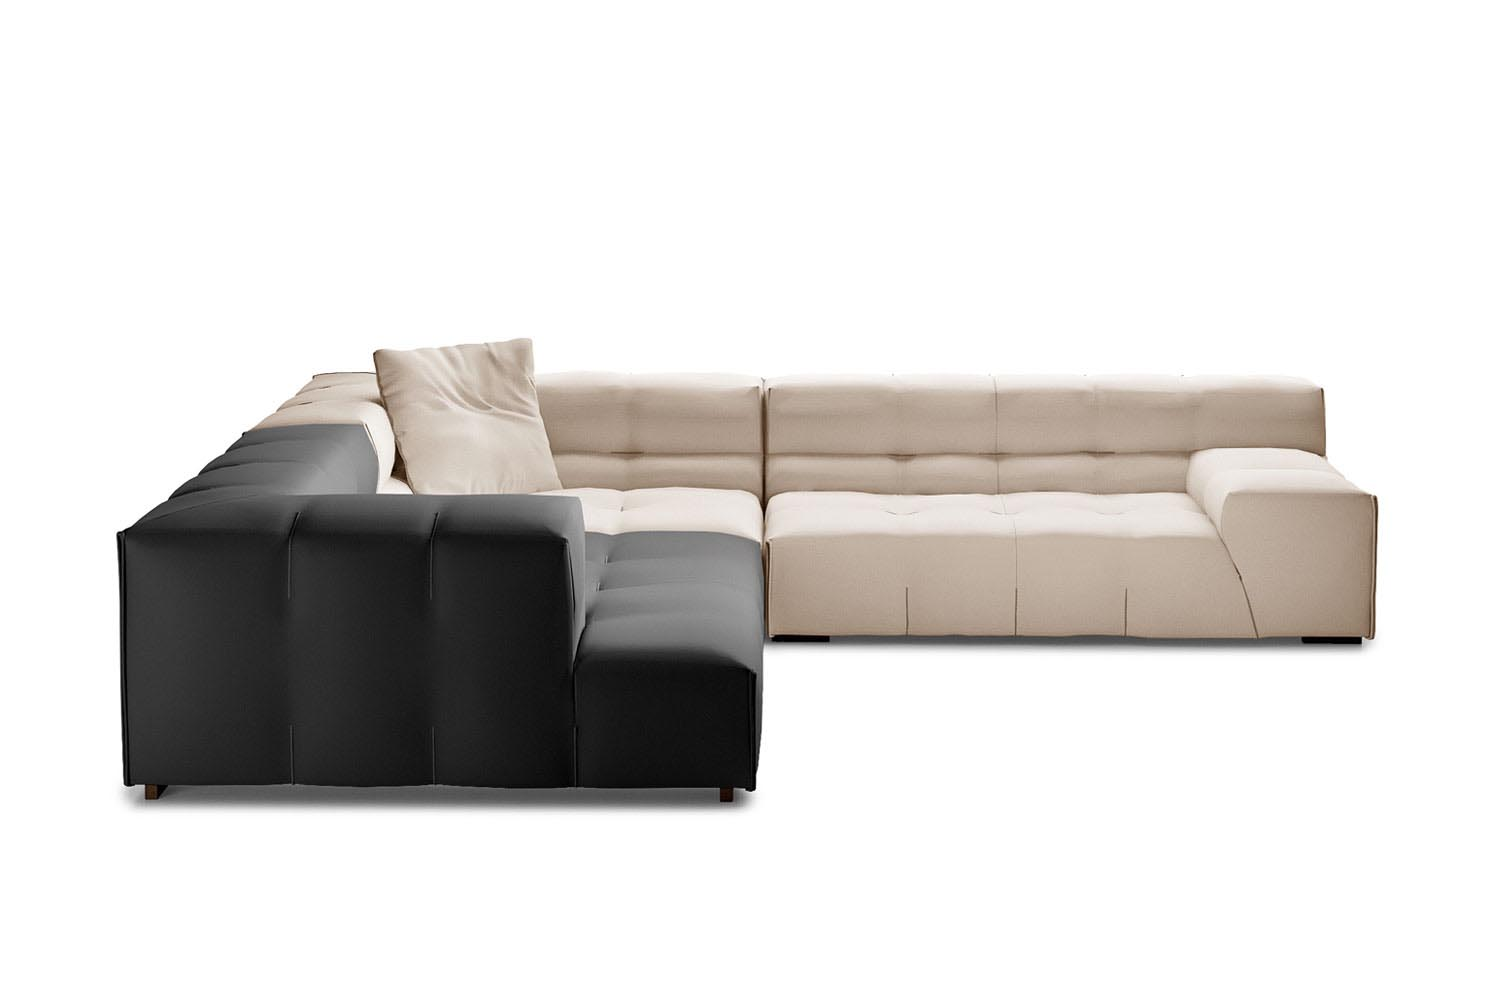 tufty time sofa replica australia crate and barrel huntley woods too by patricia urquiola for b andb italia space